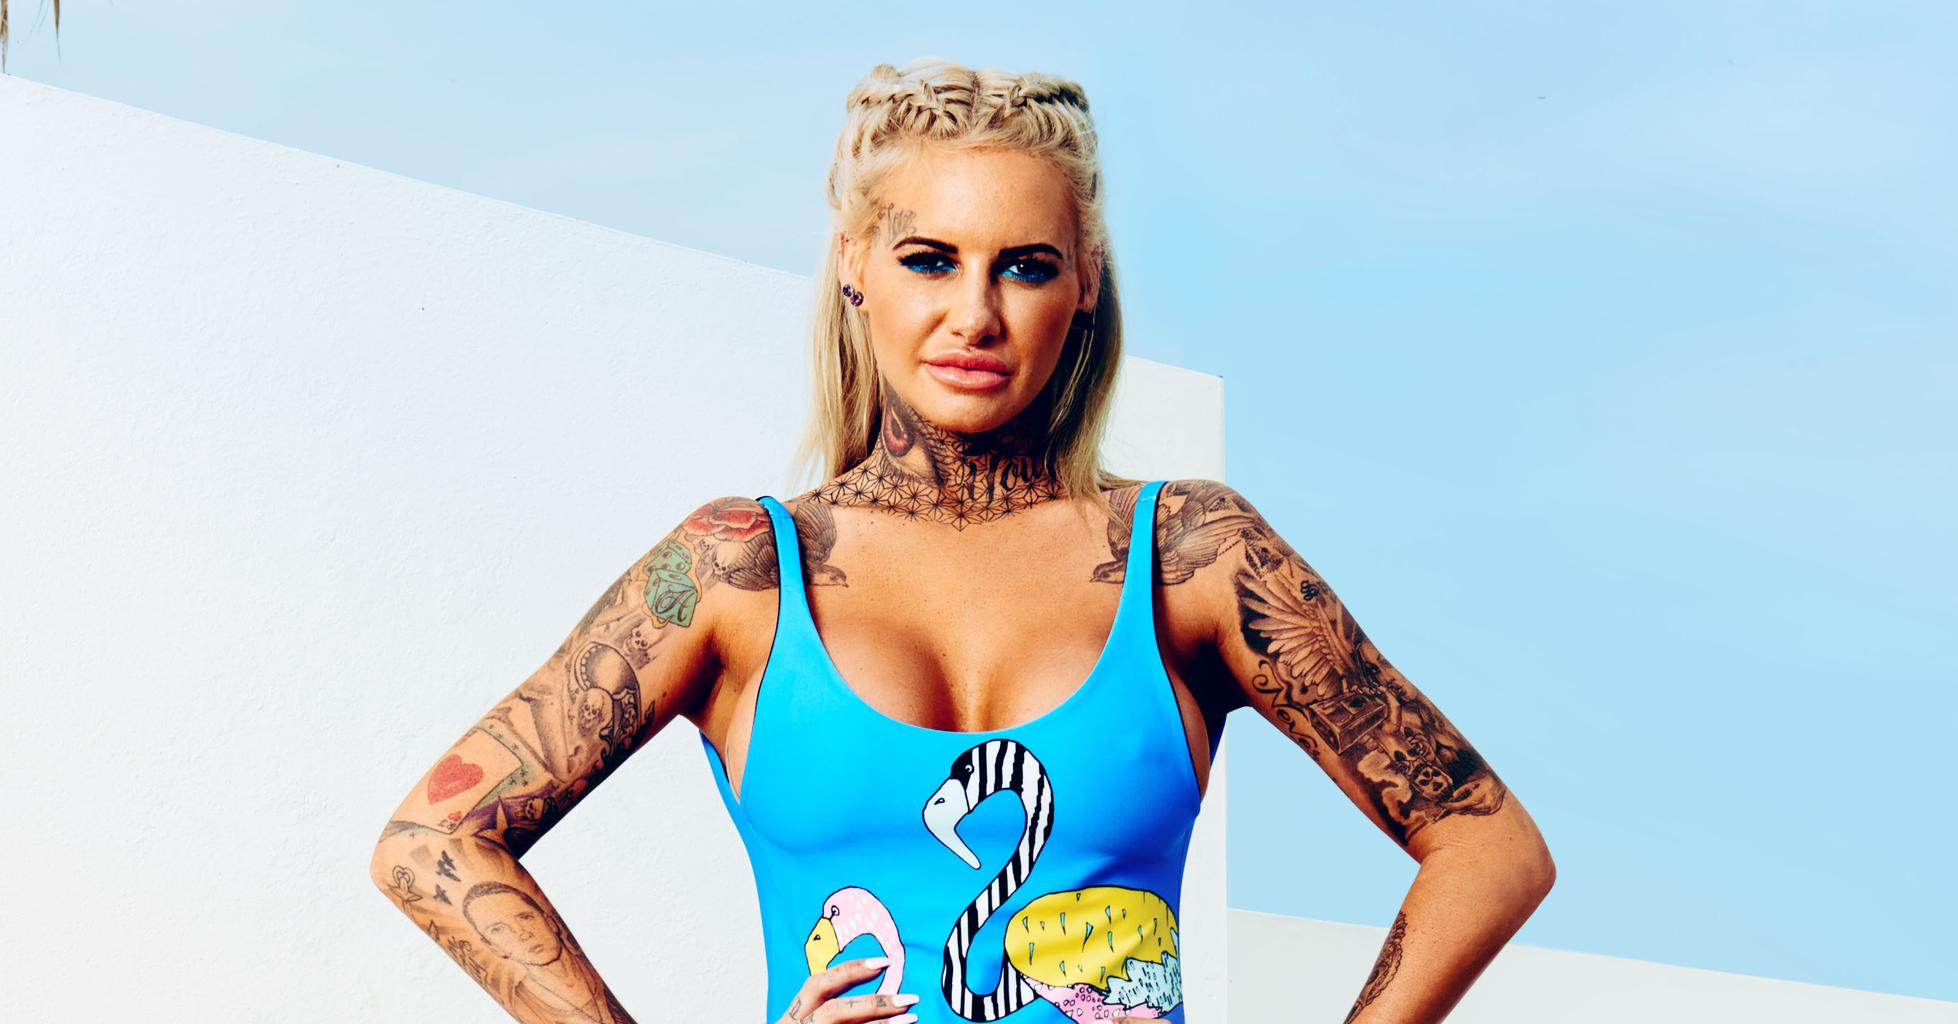 Cleavage Jemma Lucy nude (58 foto and video), Topless, Paparazzi, Instagram, cameltoe 2015